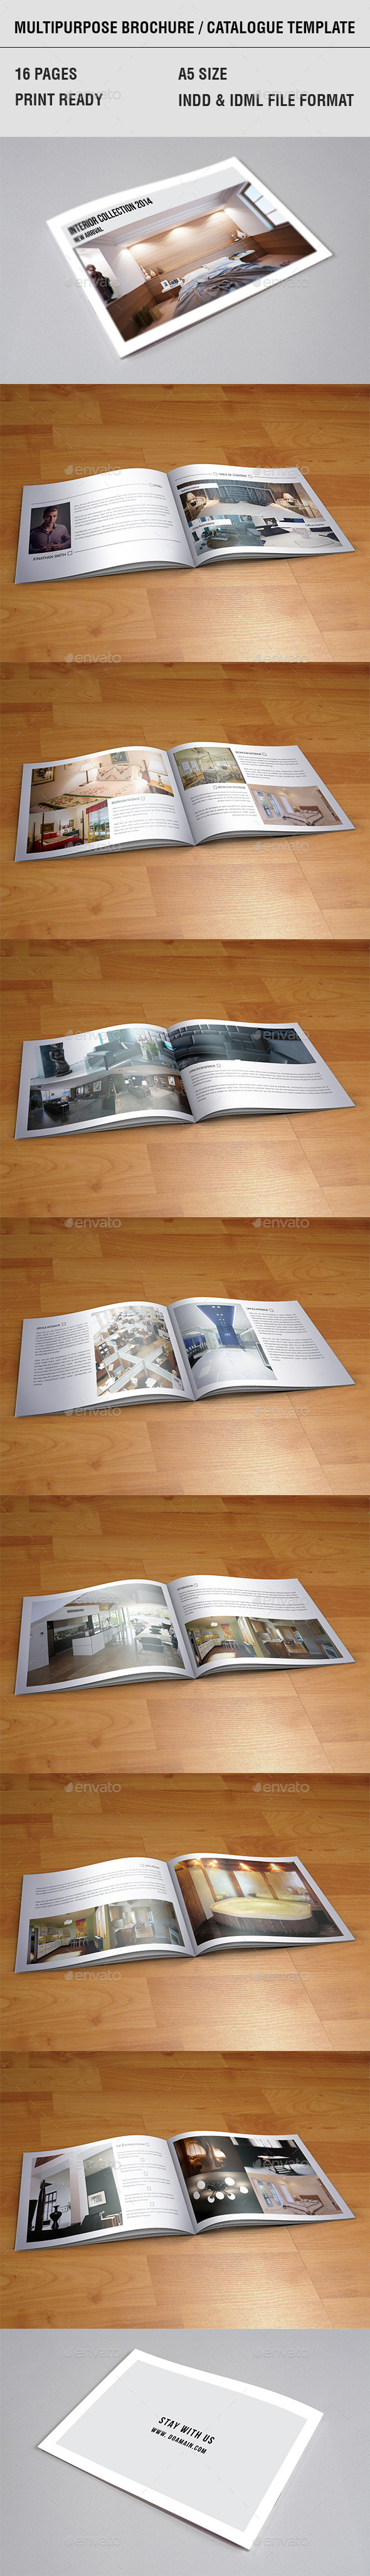 Multipurpose Brochure / Catalogue Template - Catalogs Brochures